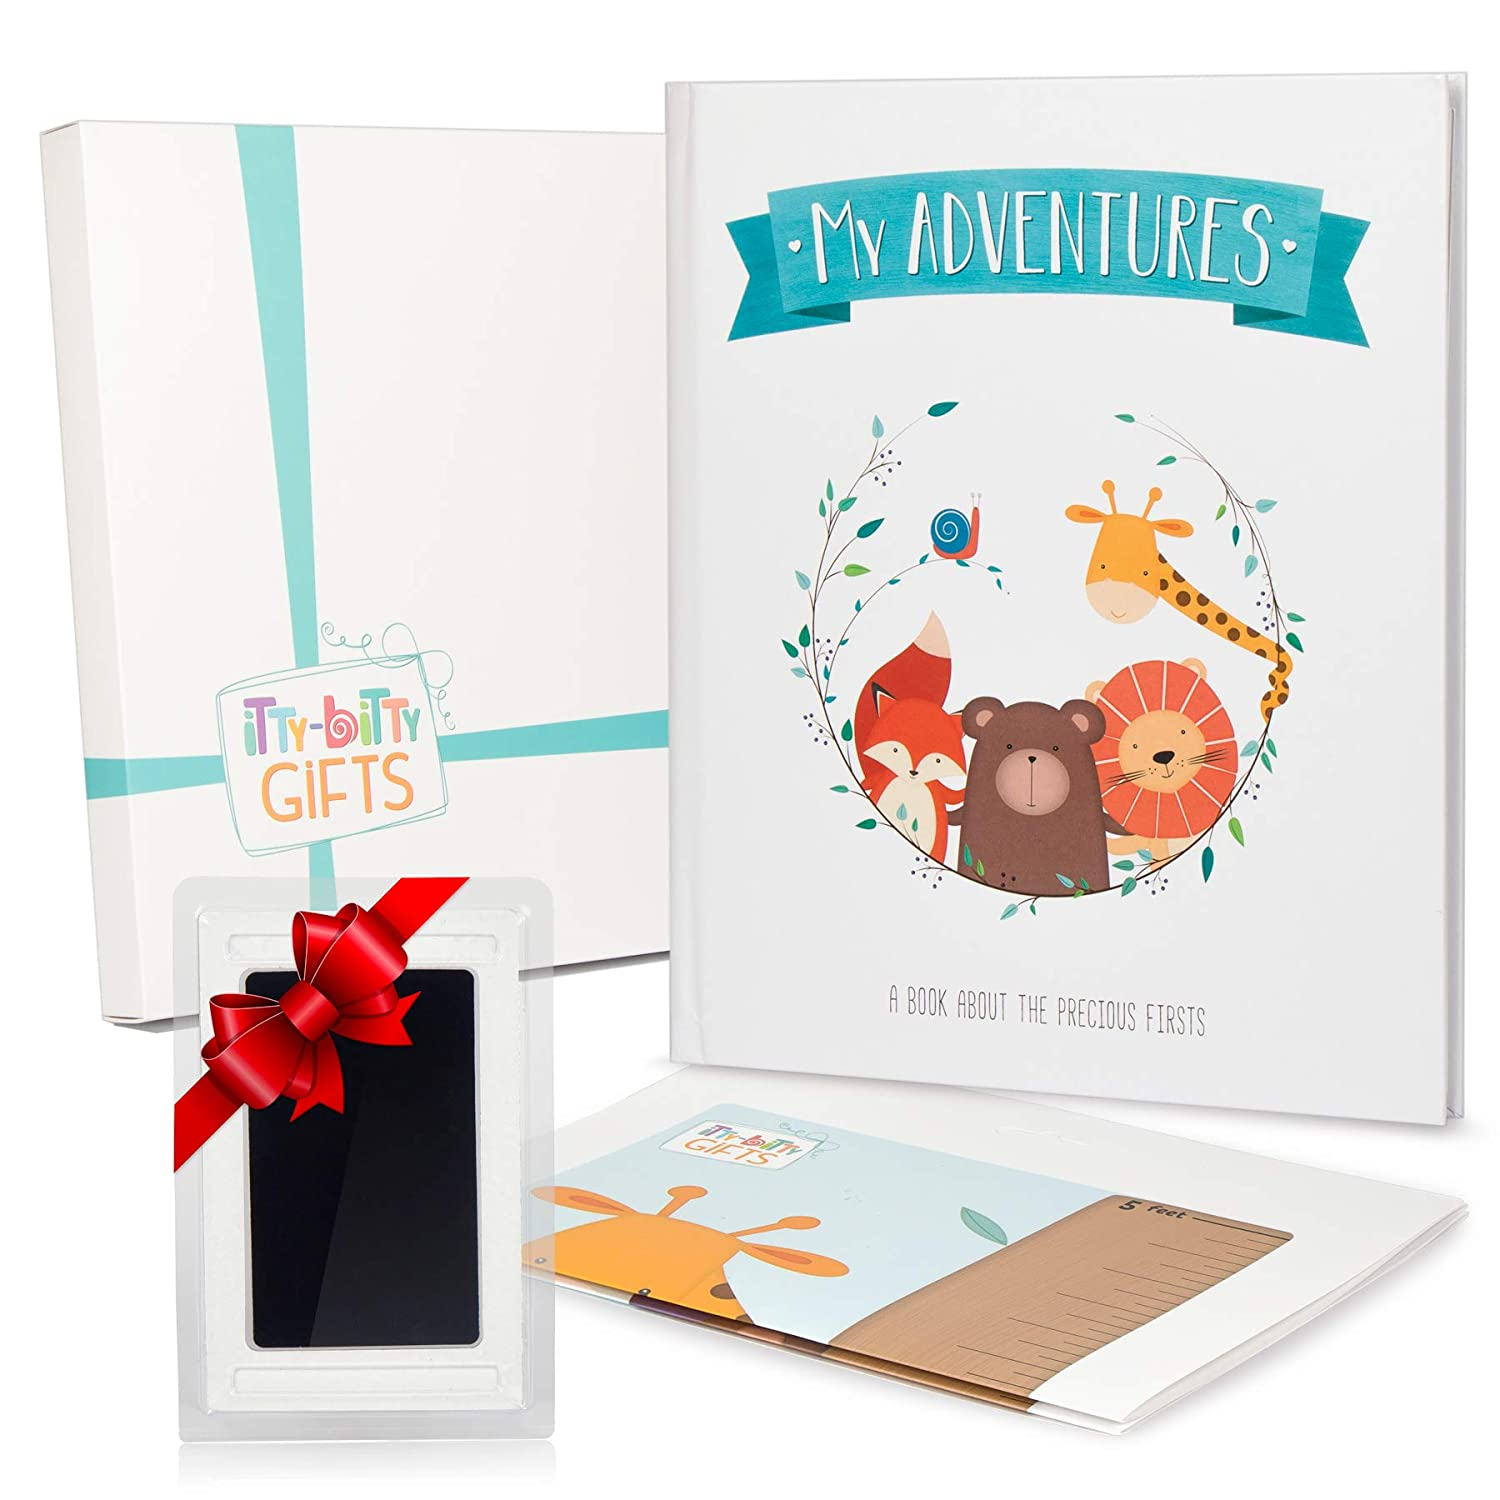 Itty Bitty First 5 Years Memory Book | Best Baby Album & Journal for New & Expectant Parents | Record Milestones & Memories from Birth to Five Years of Age | Unique Scrapbook Design for Boys & Girls Creative Goods